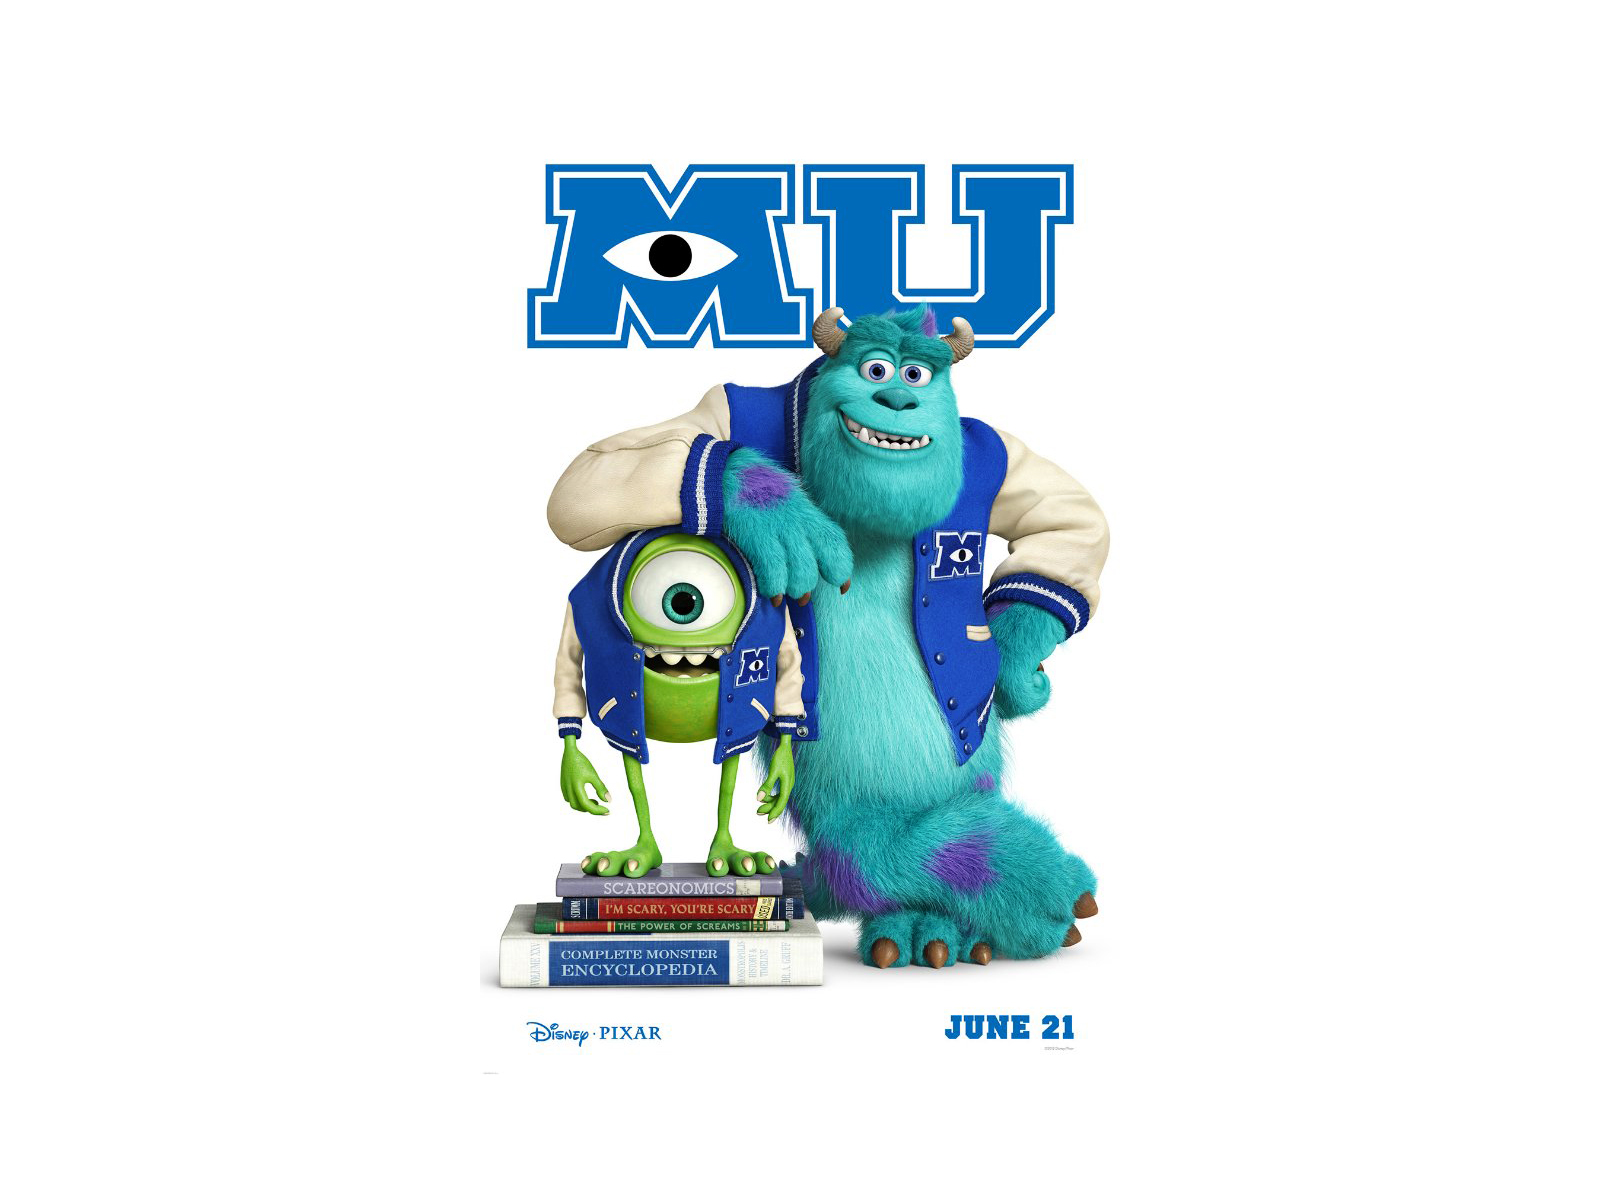 http://4.bp.blogspot.com/-b6GZEXar_8s/UMTlXLYWQ6I/AAAAAAAAGl4/cPRtX43jmWQ/s1600/Monsters-University-Main-Characters-HD-Wallpaper_Vvallpaper.Net.jpg